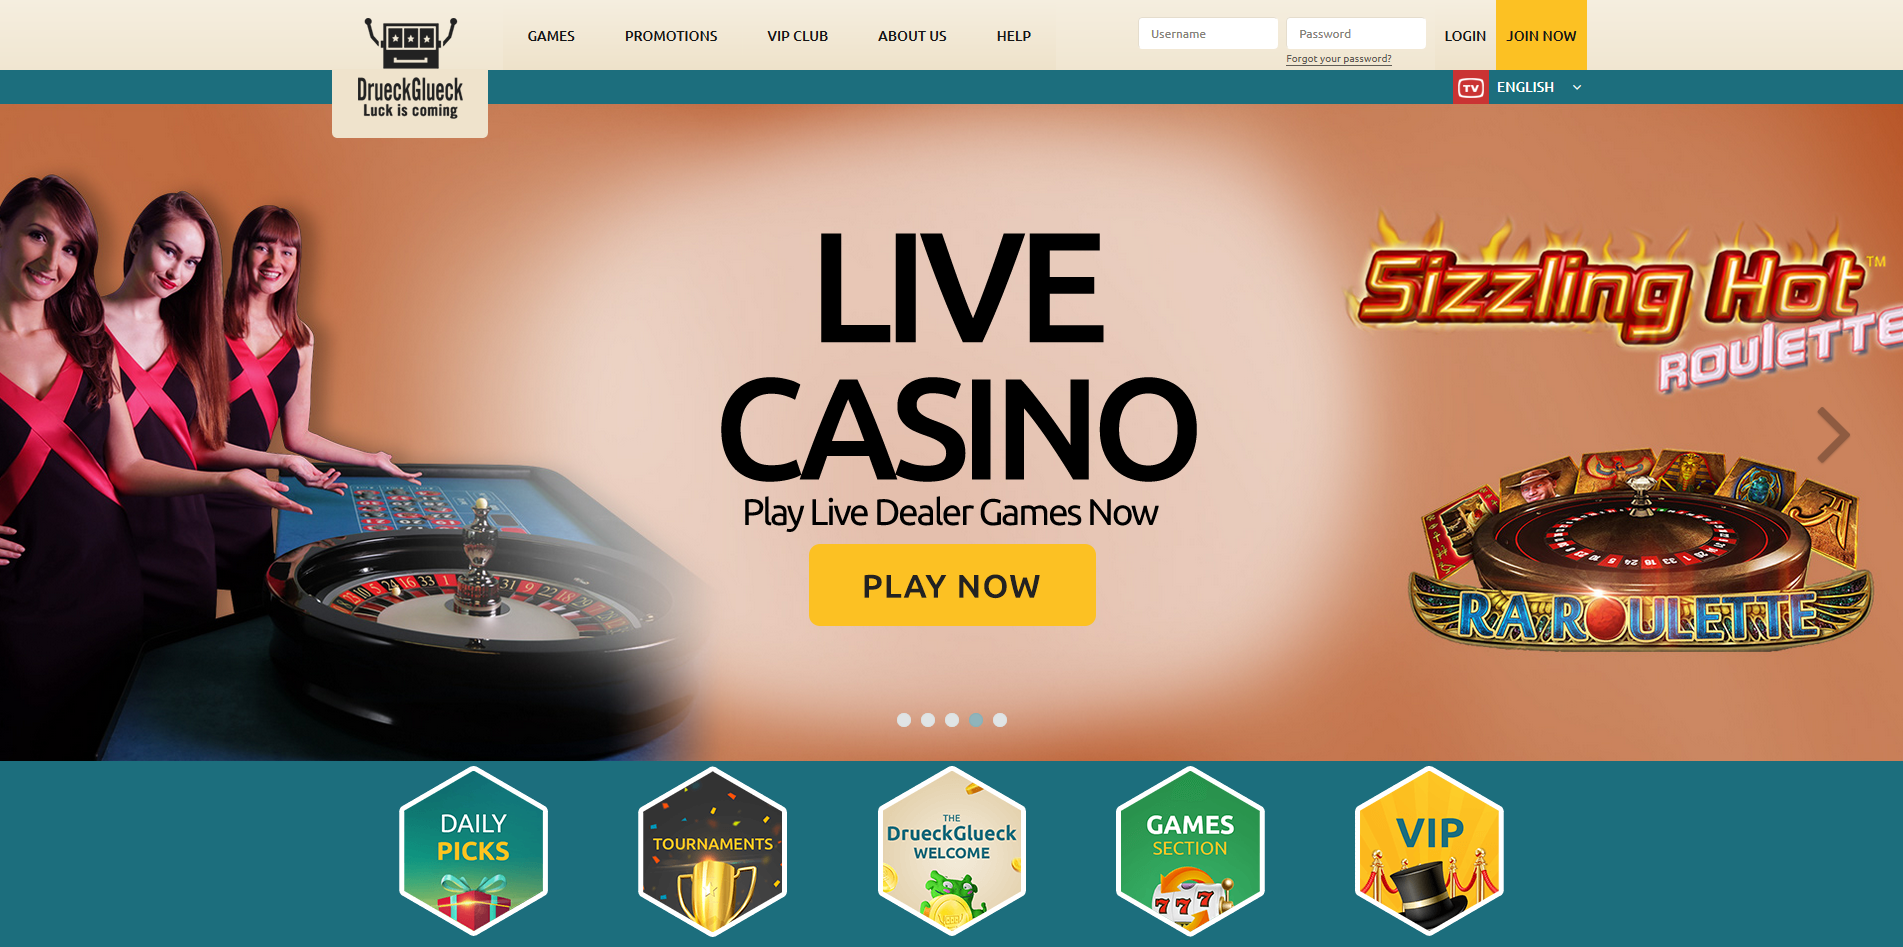 DrueckGlueck Casino - Review & Rankings by VSO